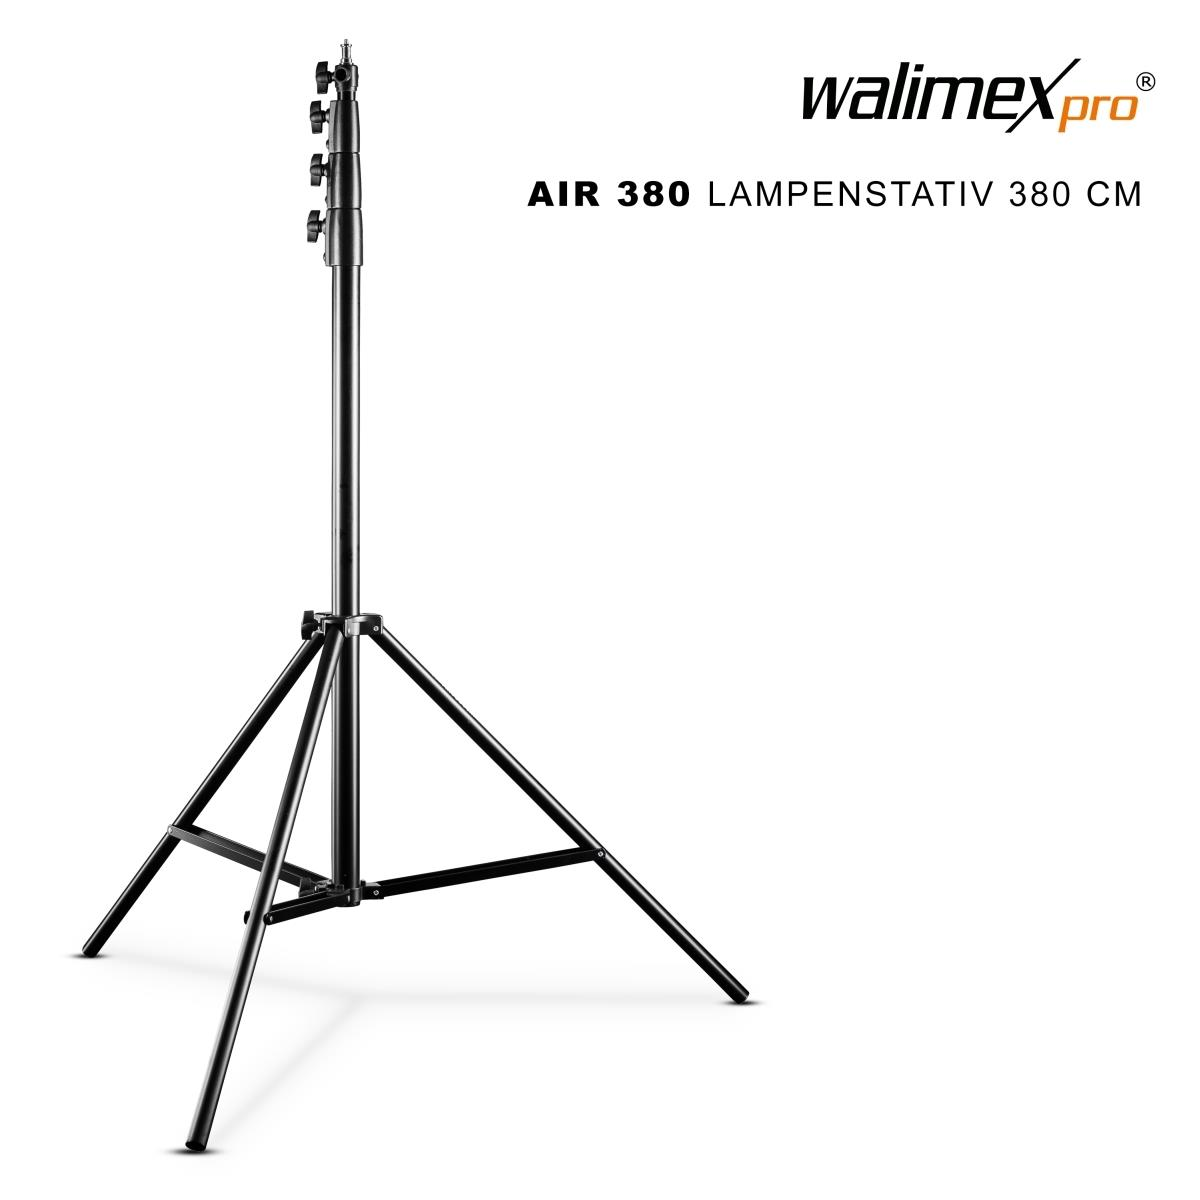 Walimex pro AIR 380 Deluxe Lampenstativ 380 cm